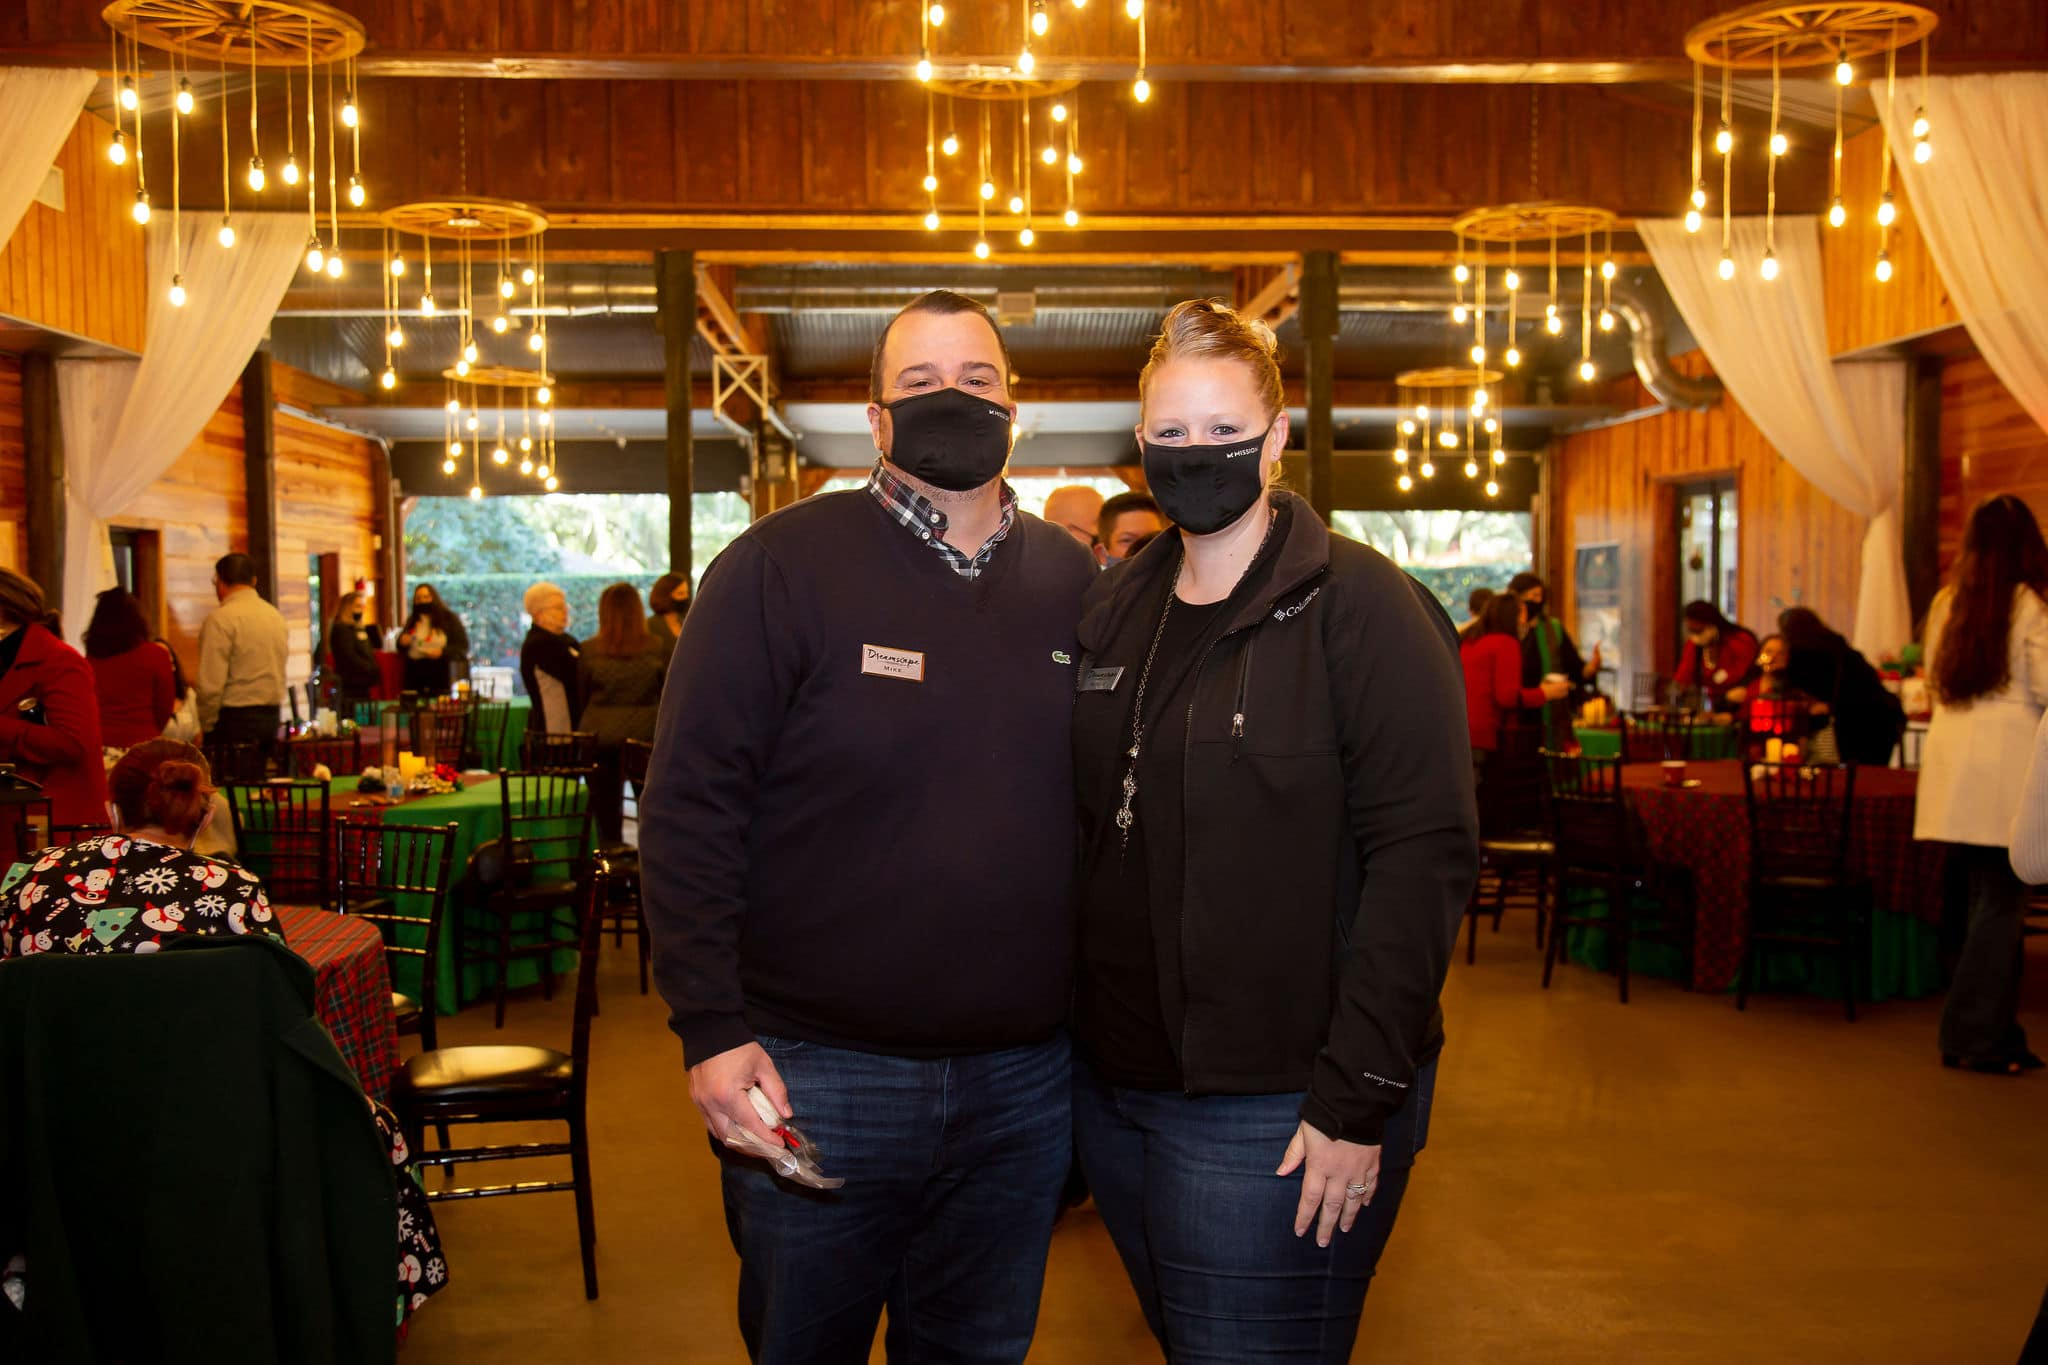 husband and wife stand together for photograph in the middle of holiday party wearing dark jeans and darker colored sweater and jacket both with branded black face coverings